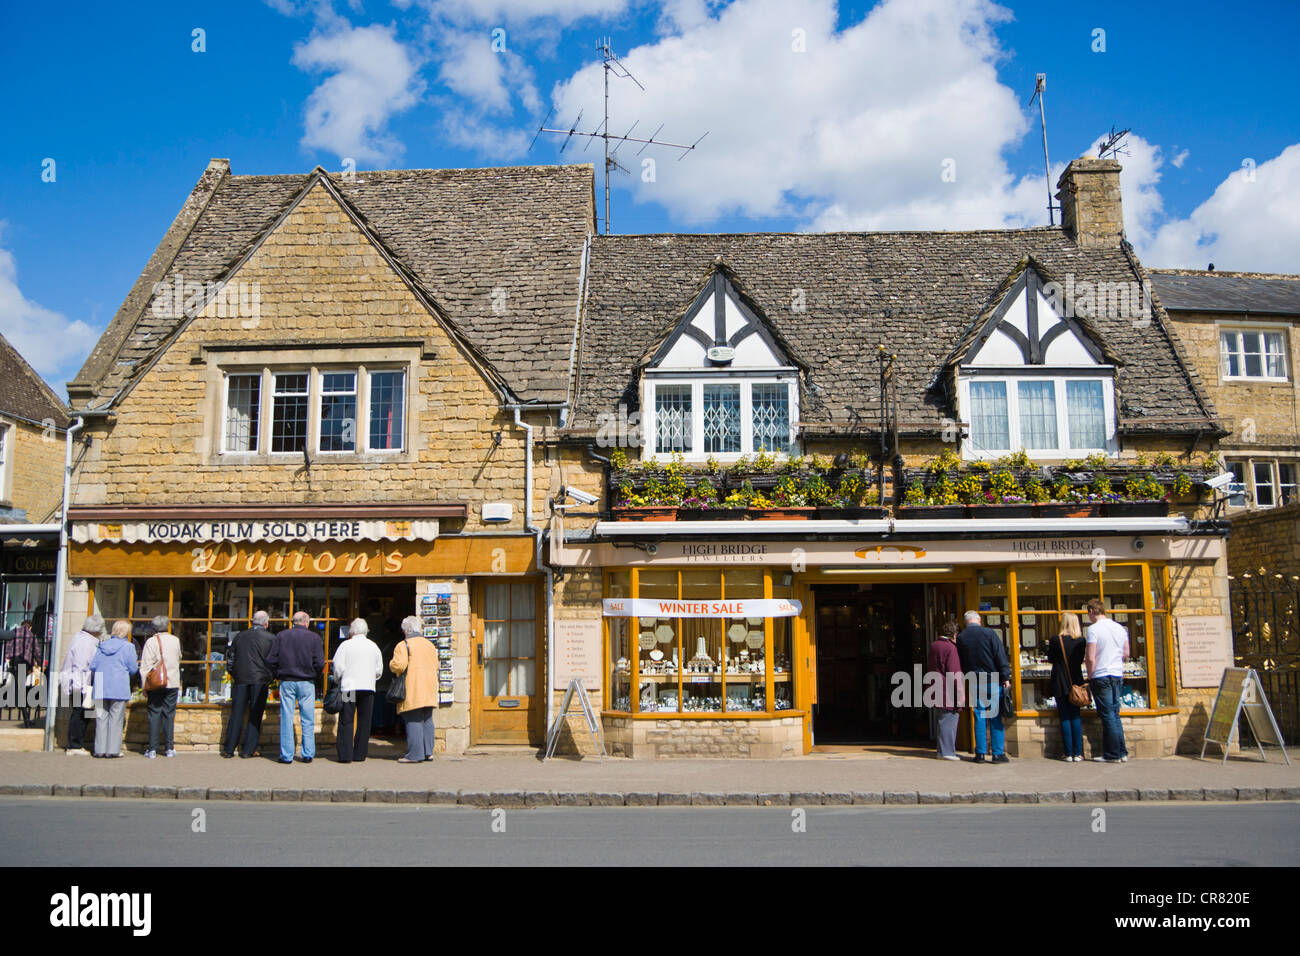 High Street, Bourton on the Water, Venice of the Cotswolds, Gloucestershire, England, United Kingdom, Europe - Stock Image